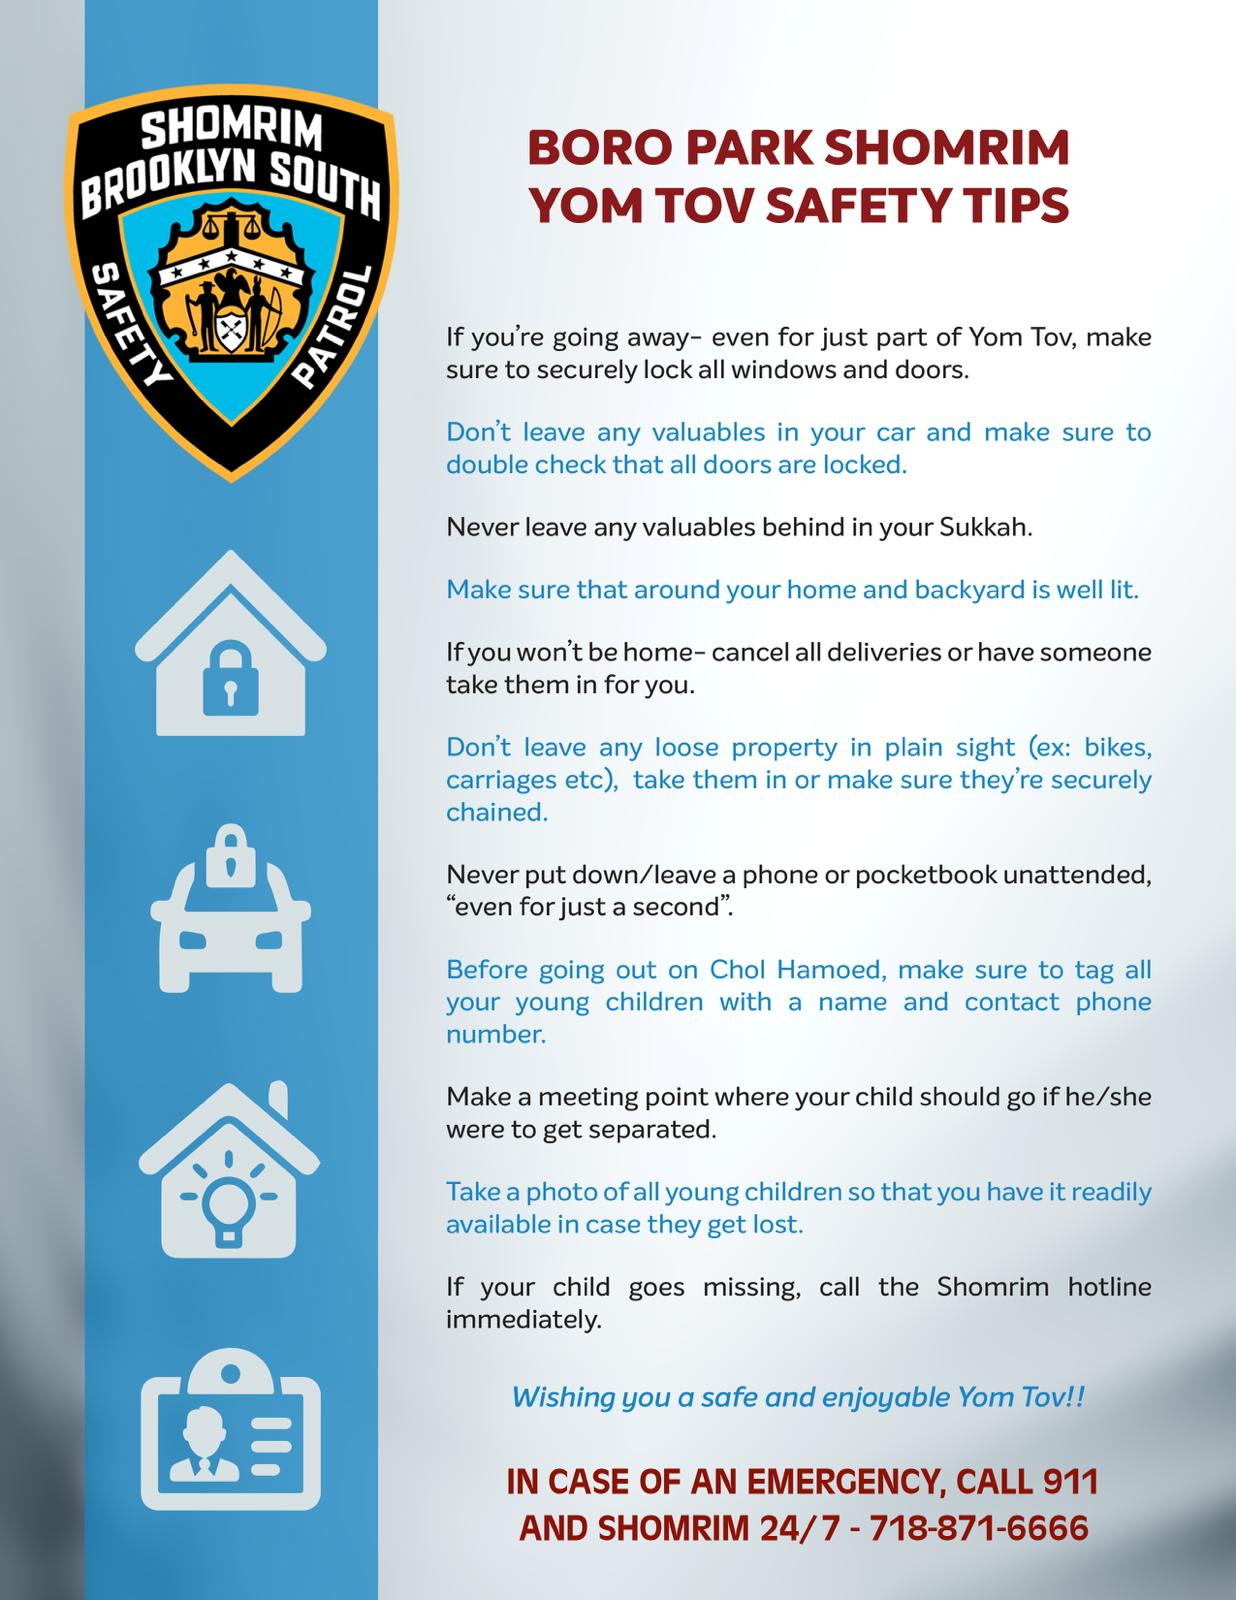 Shomrim from multiple neighborhoods with Safety Tips